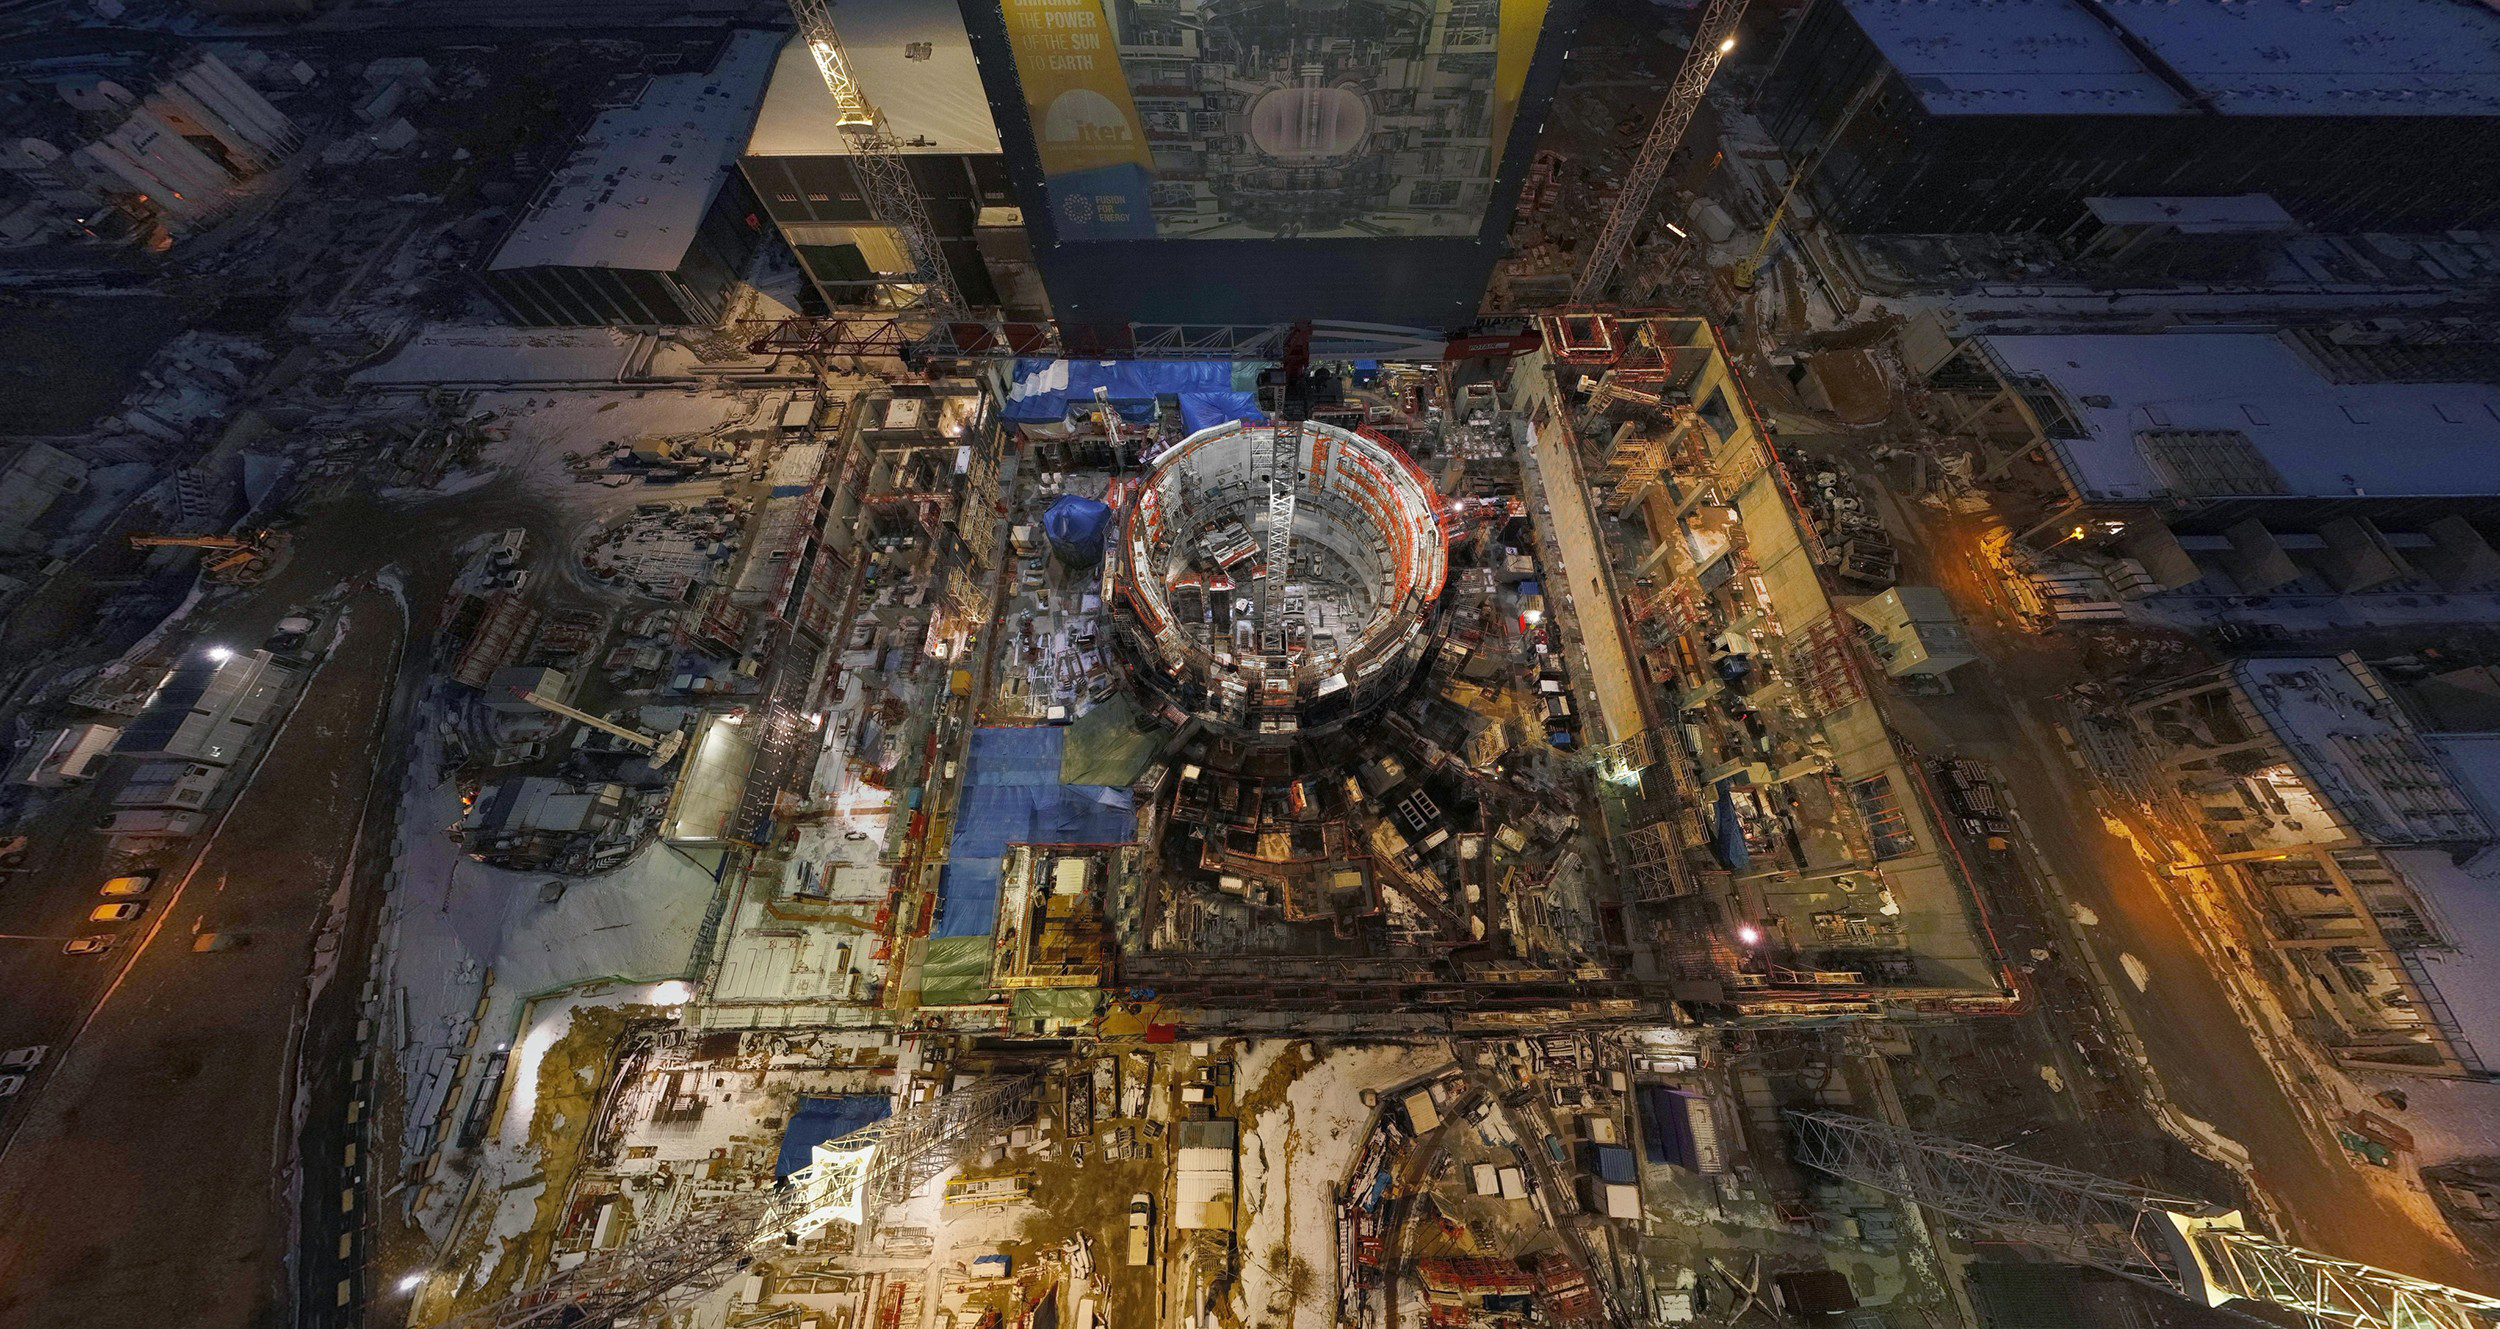 The long wait for fusion power may be coming to an end